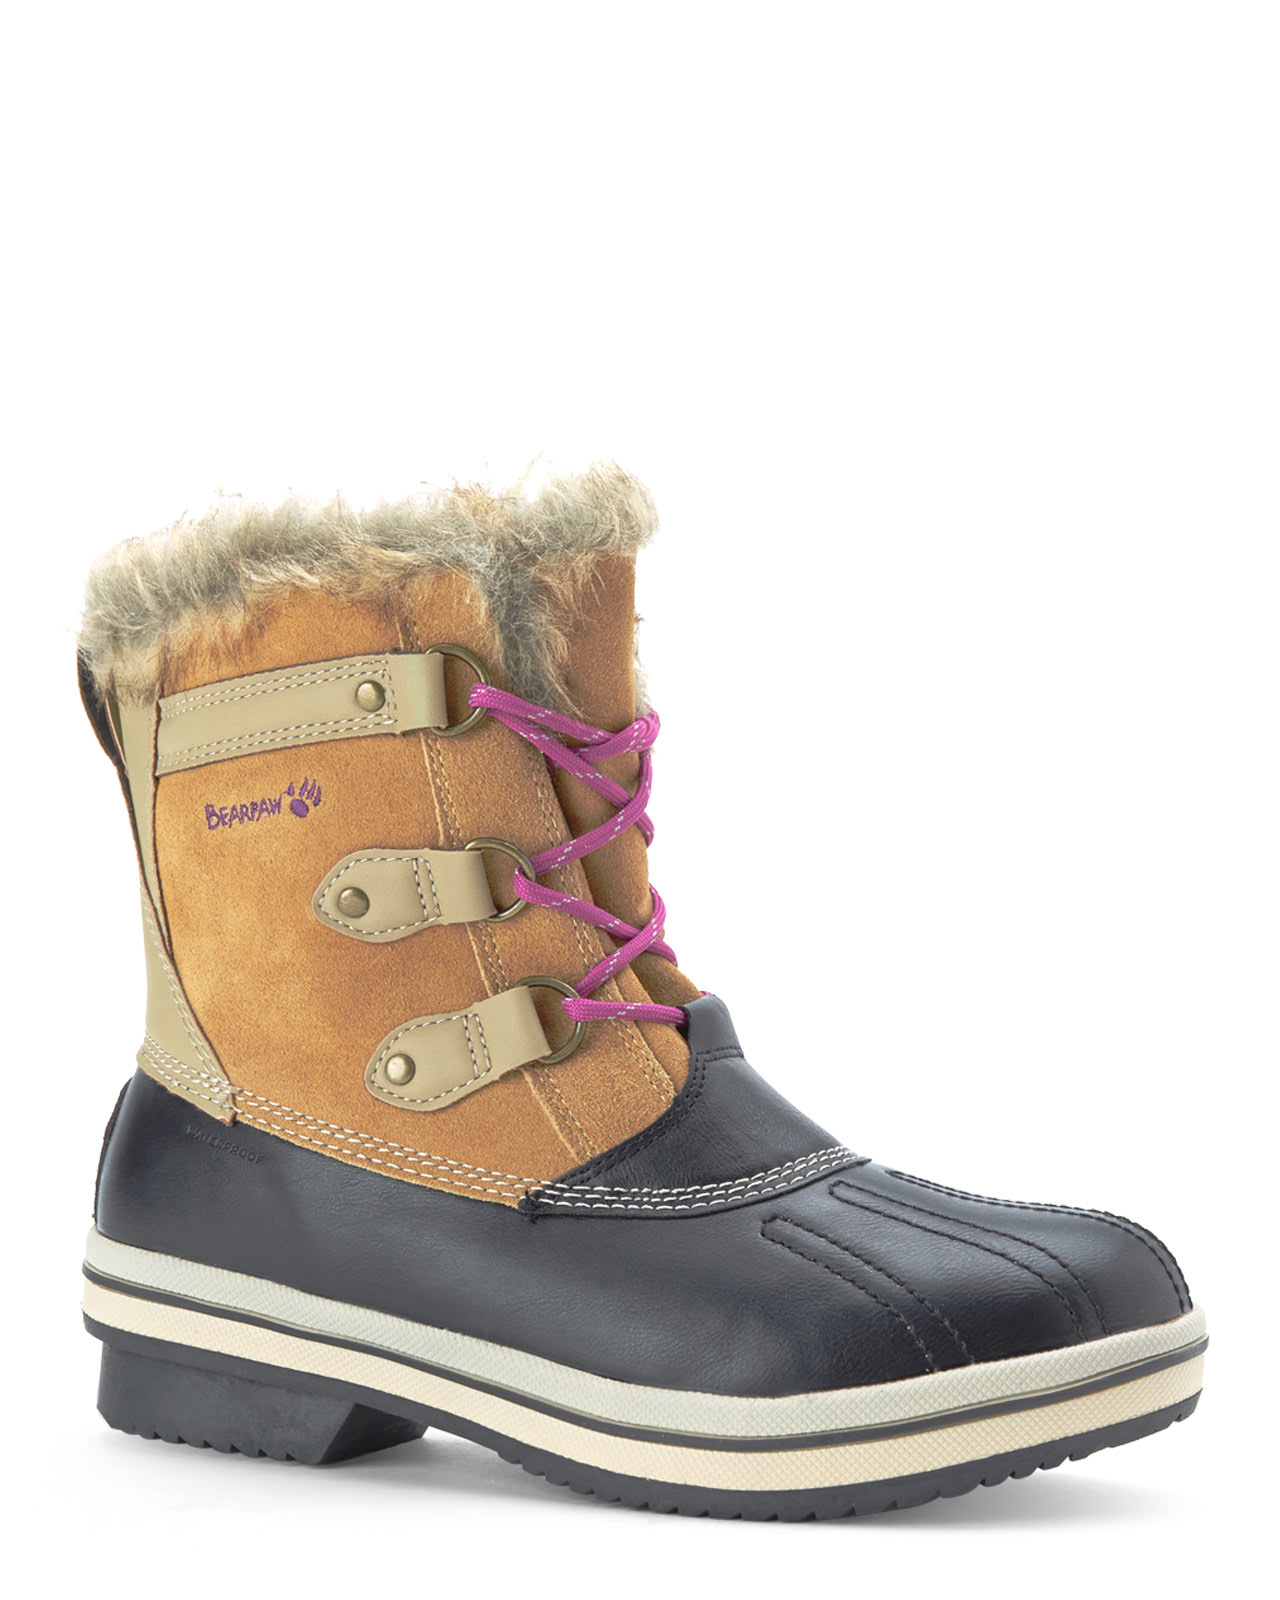 81d75ad7c72 Lyst - BEARPAW Hickory & Black Wallowa Boots in Brown